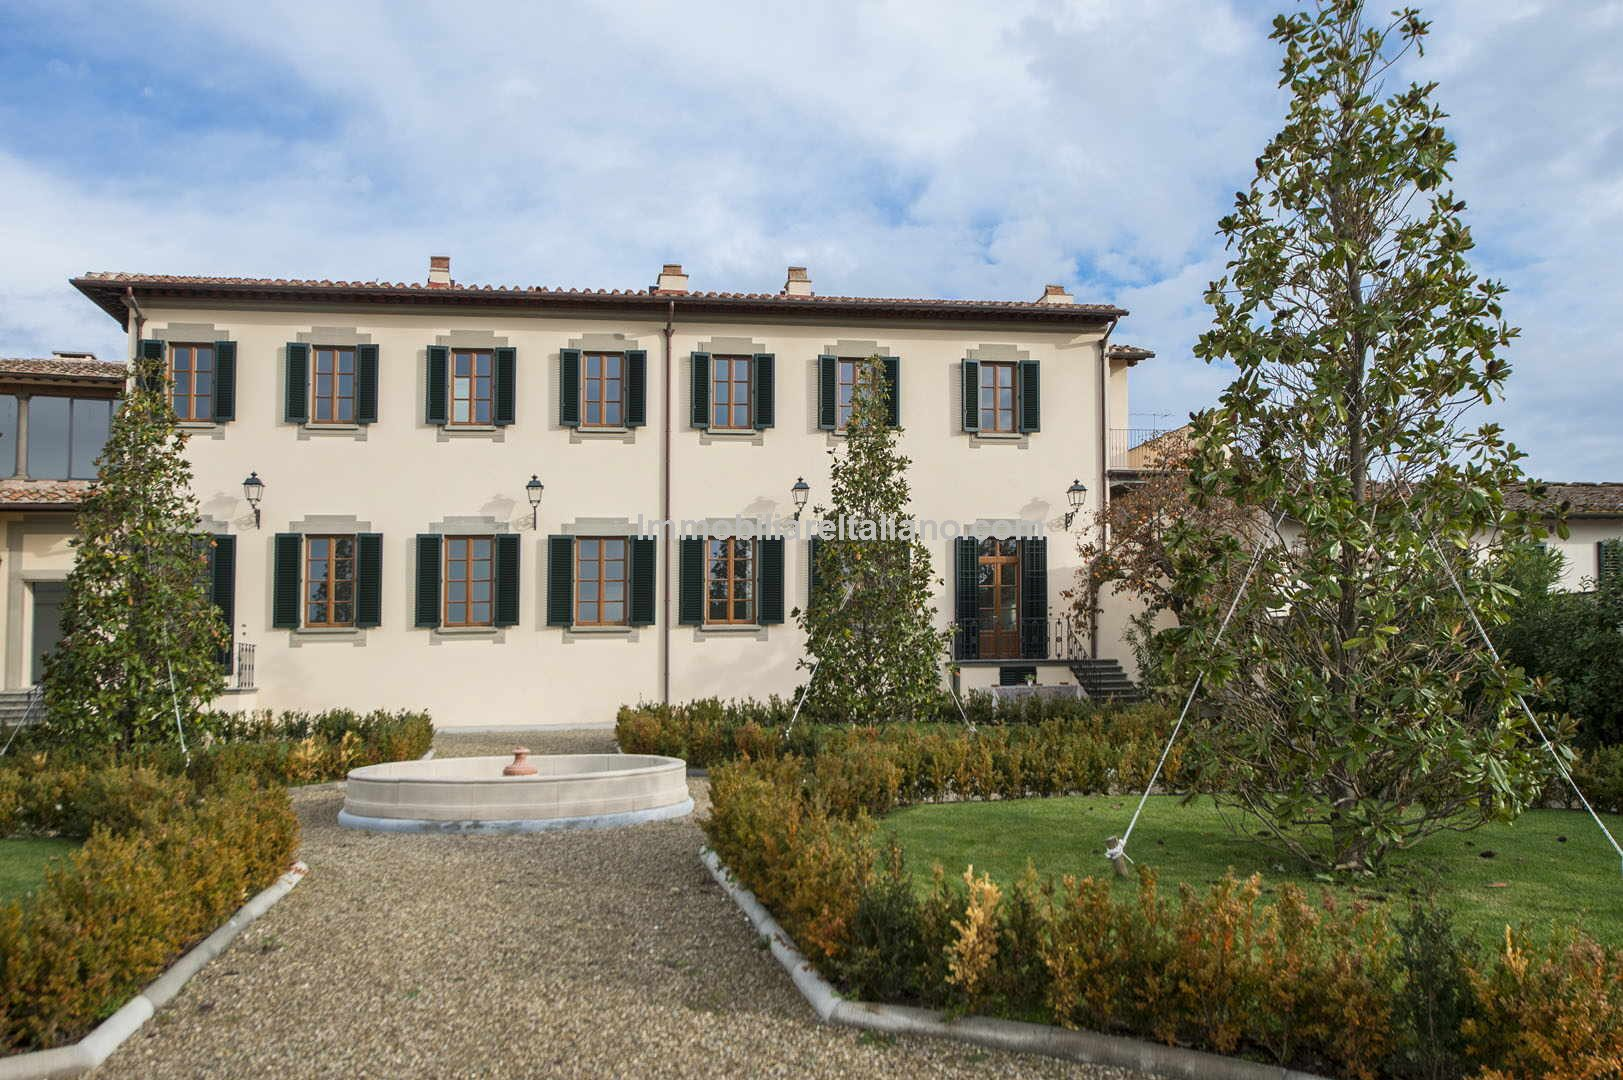 Florence Tuscany convent divided into 12 apartments